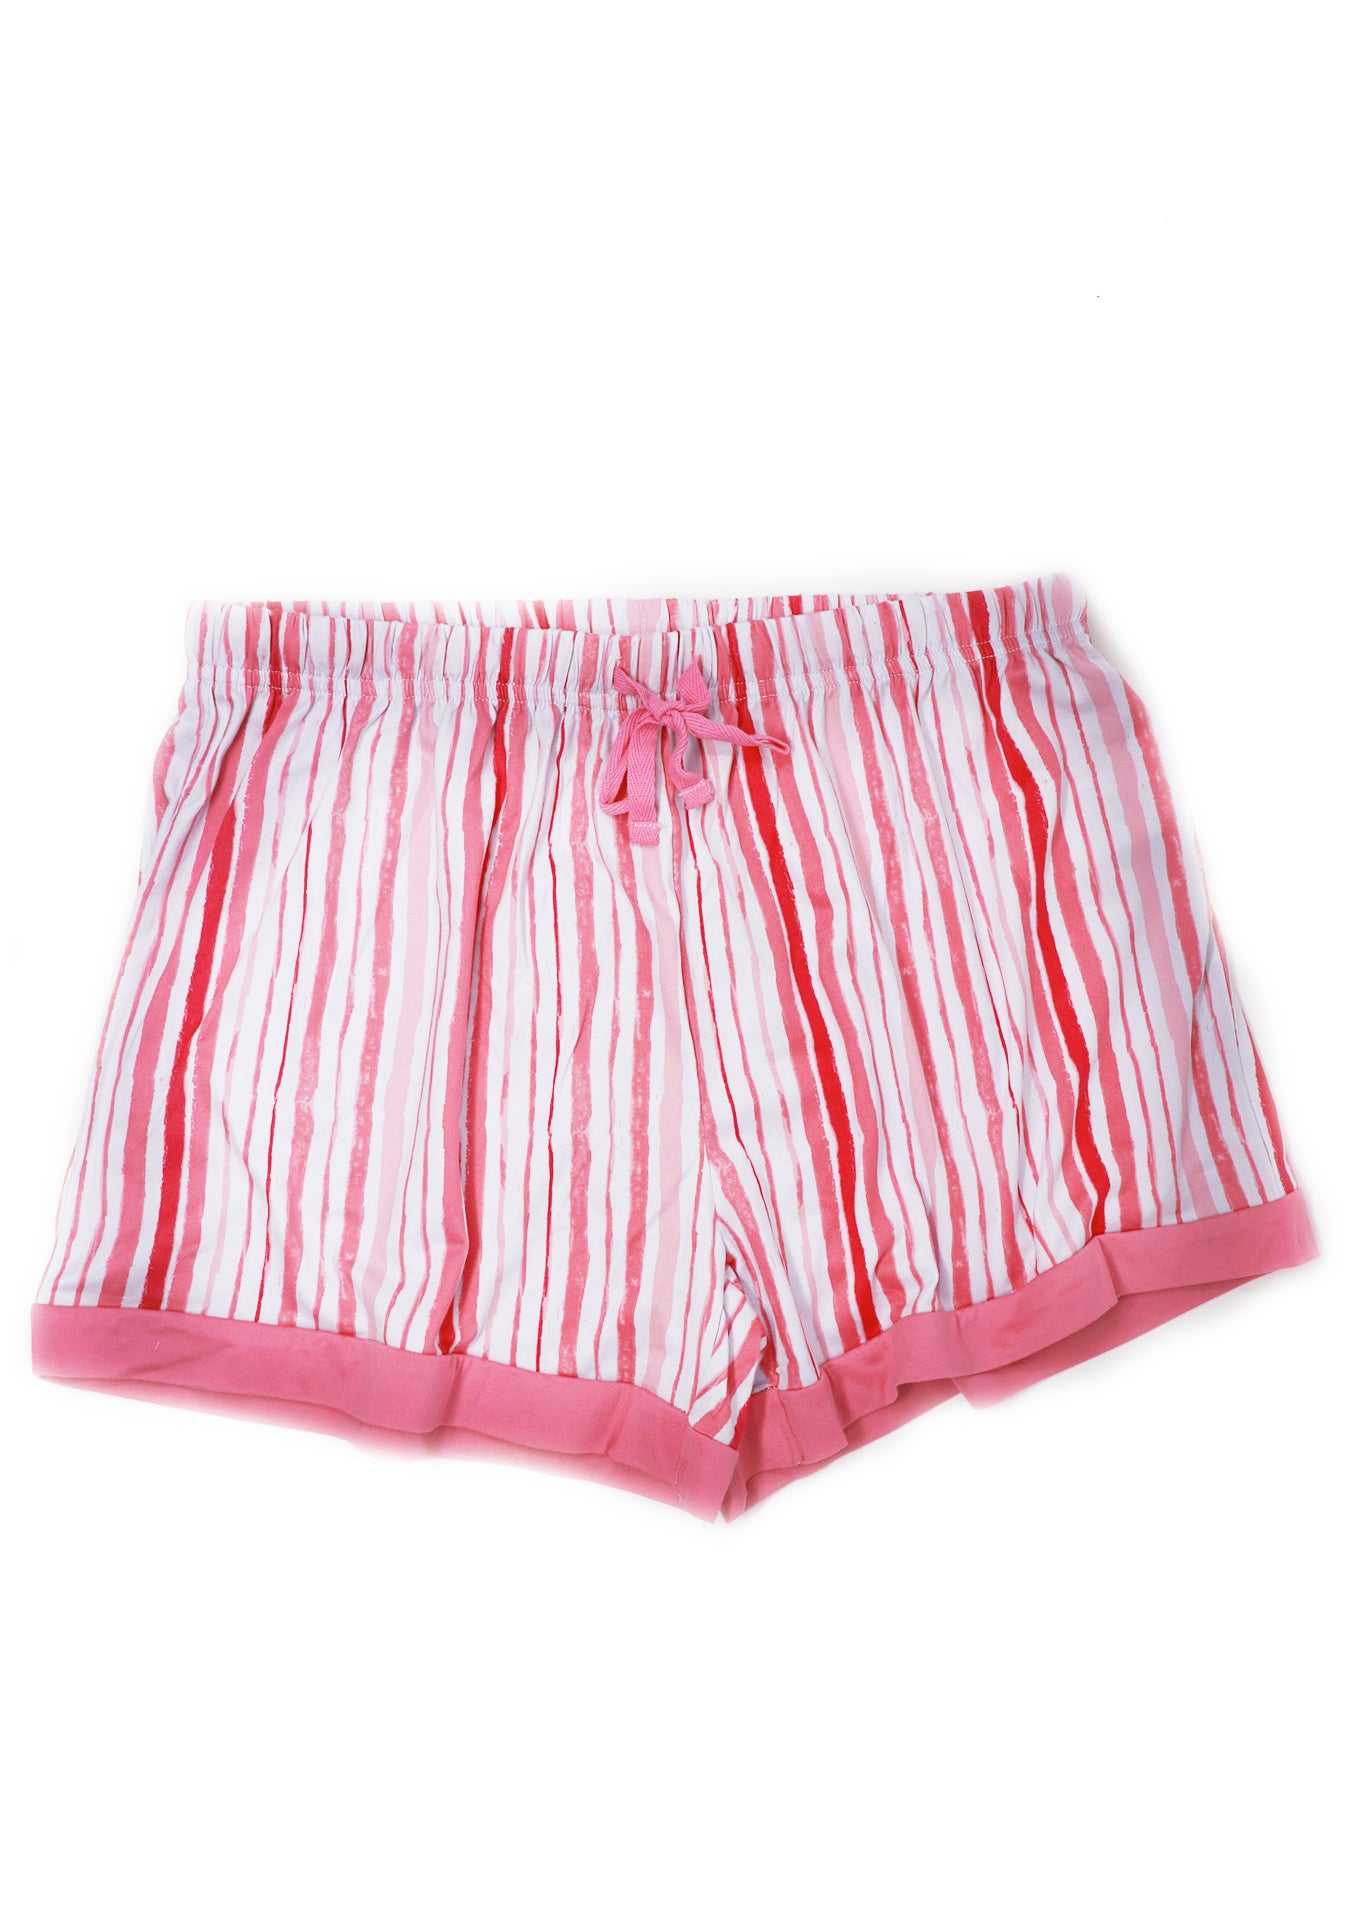 Sweet Pink Stripes Sleep Shorts - Gabrielle's Biloxi